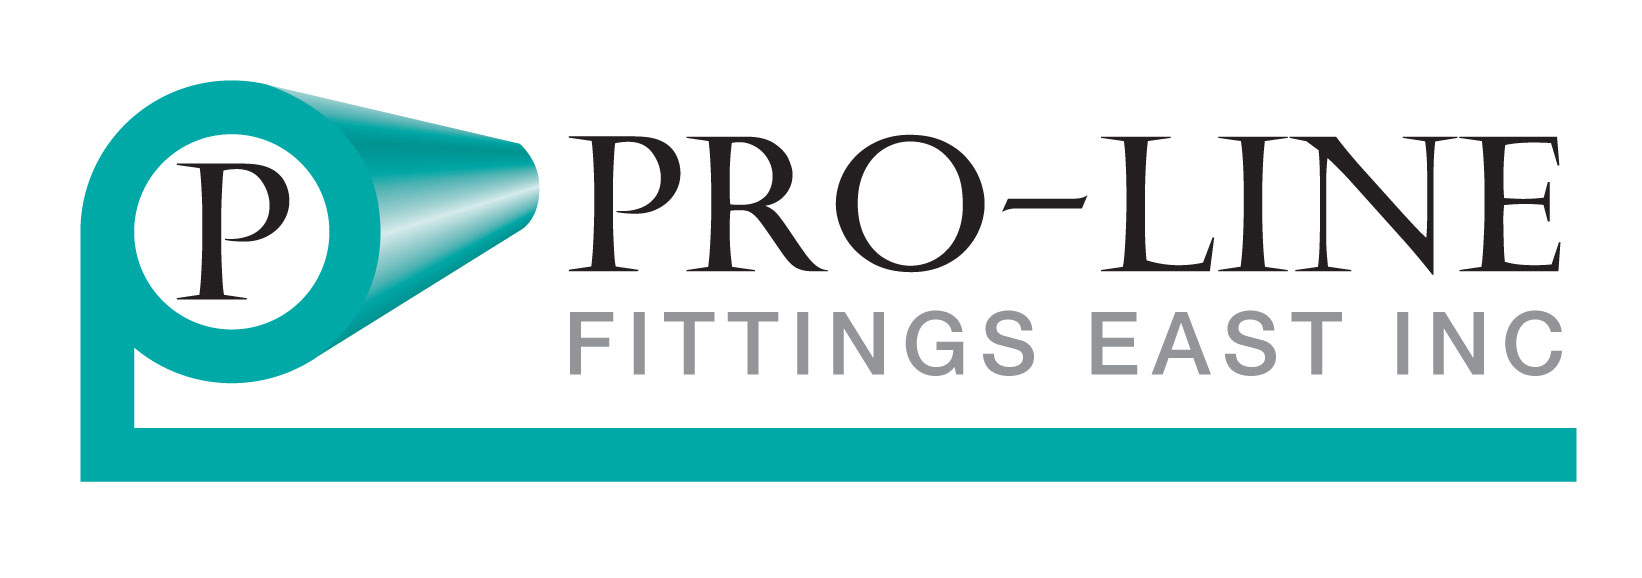 Pro-Line Fittings East logo